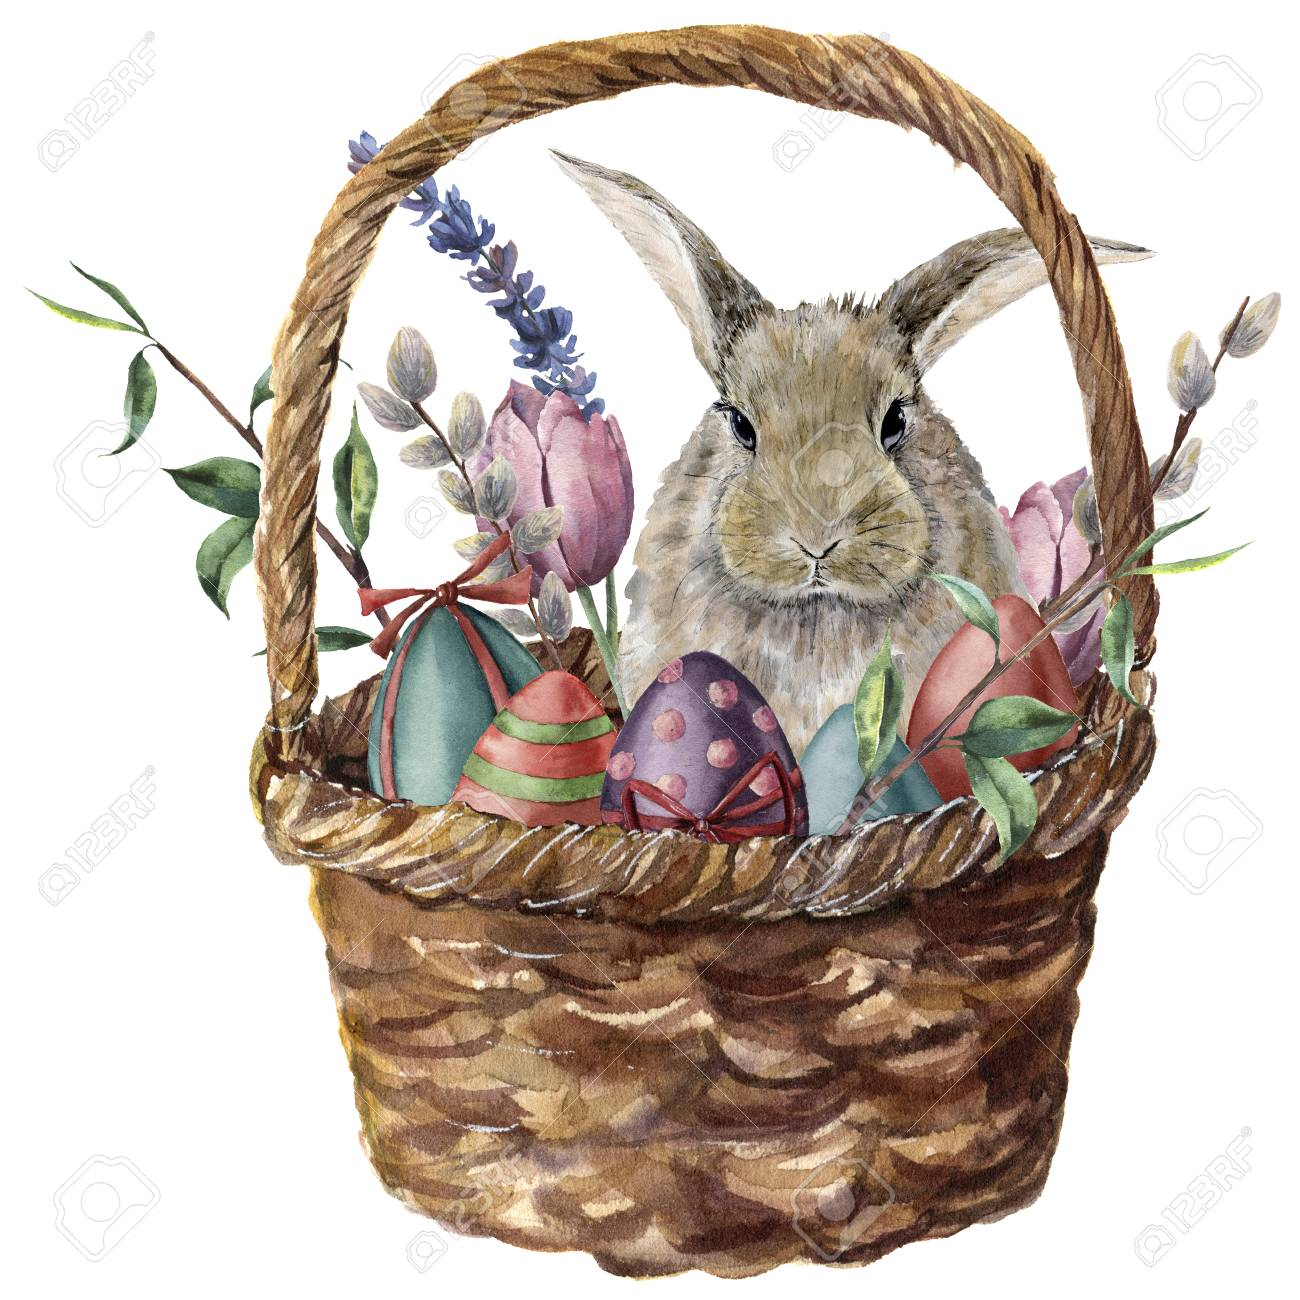 Watercolor easter card. Hand painted basket with colored eggs, bunny, lavender, tulip, willow and tree branch isolated on white background. Holiday print for design. - 96654819